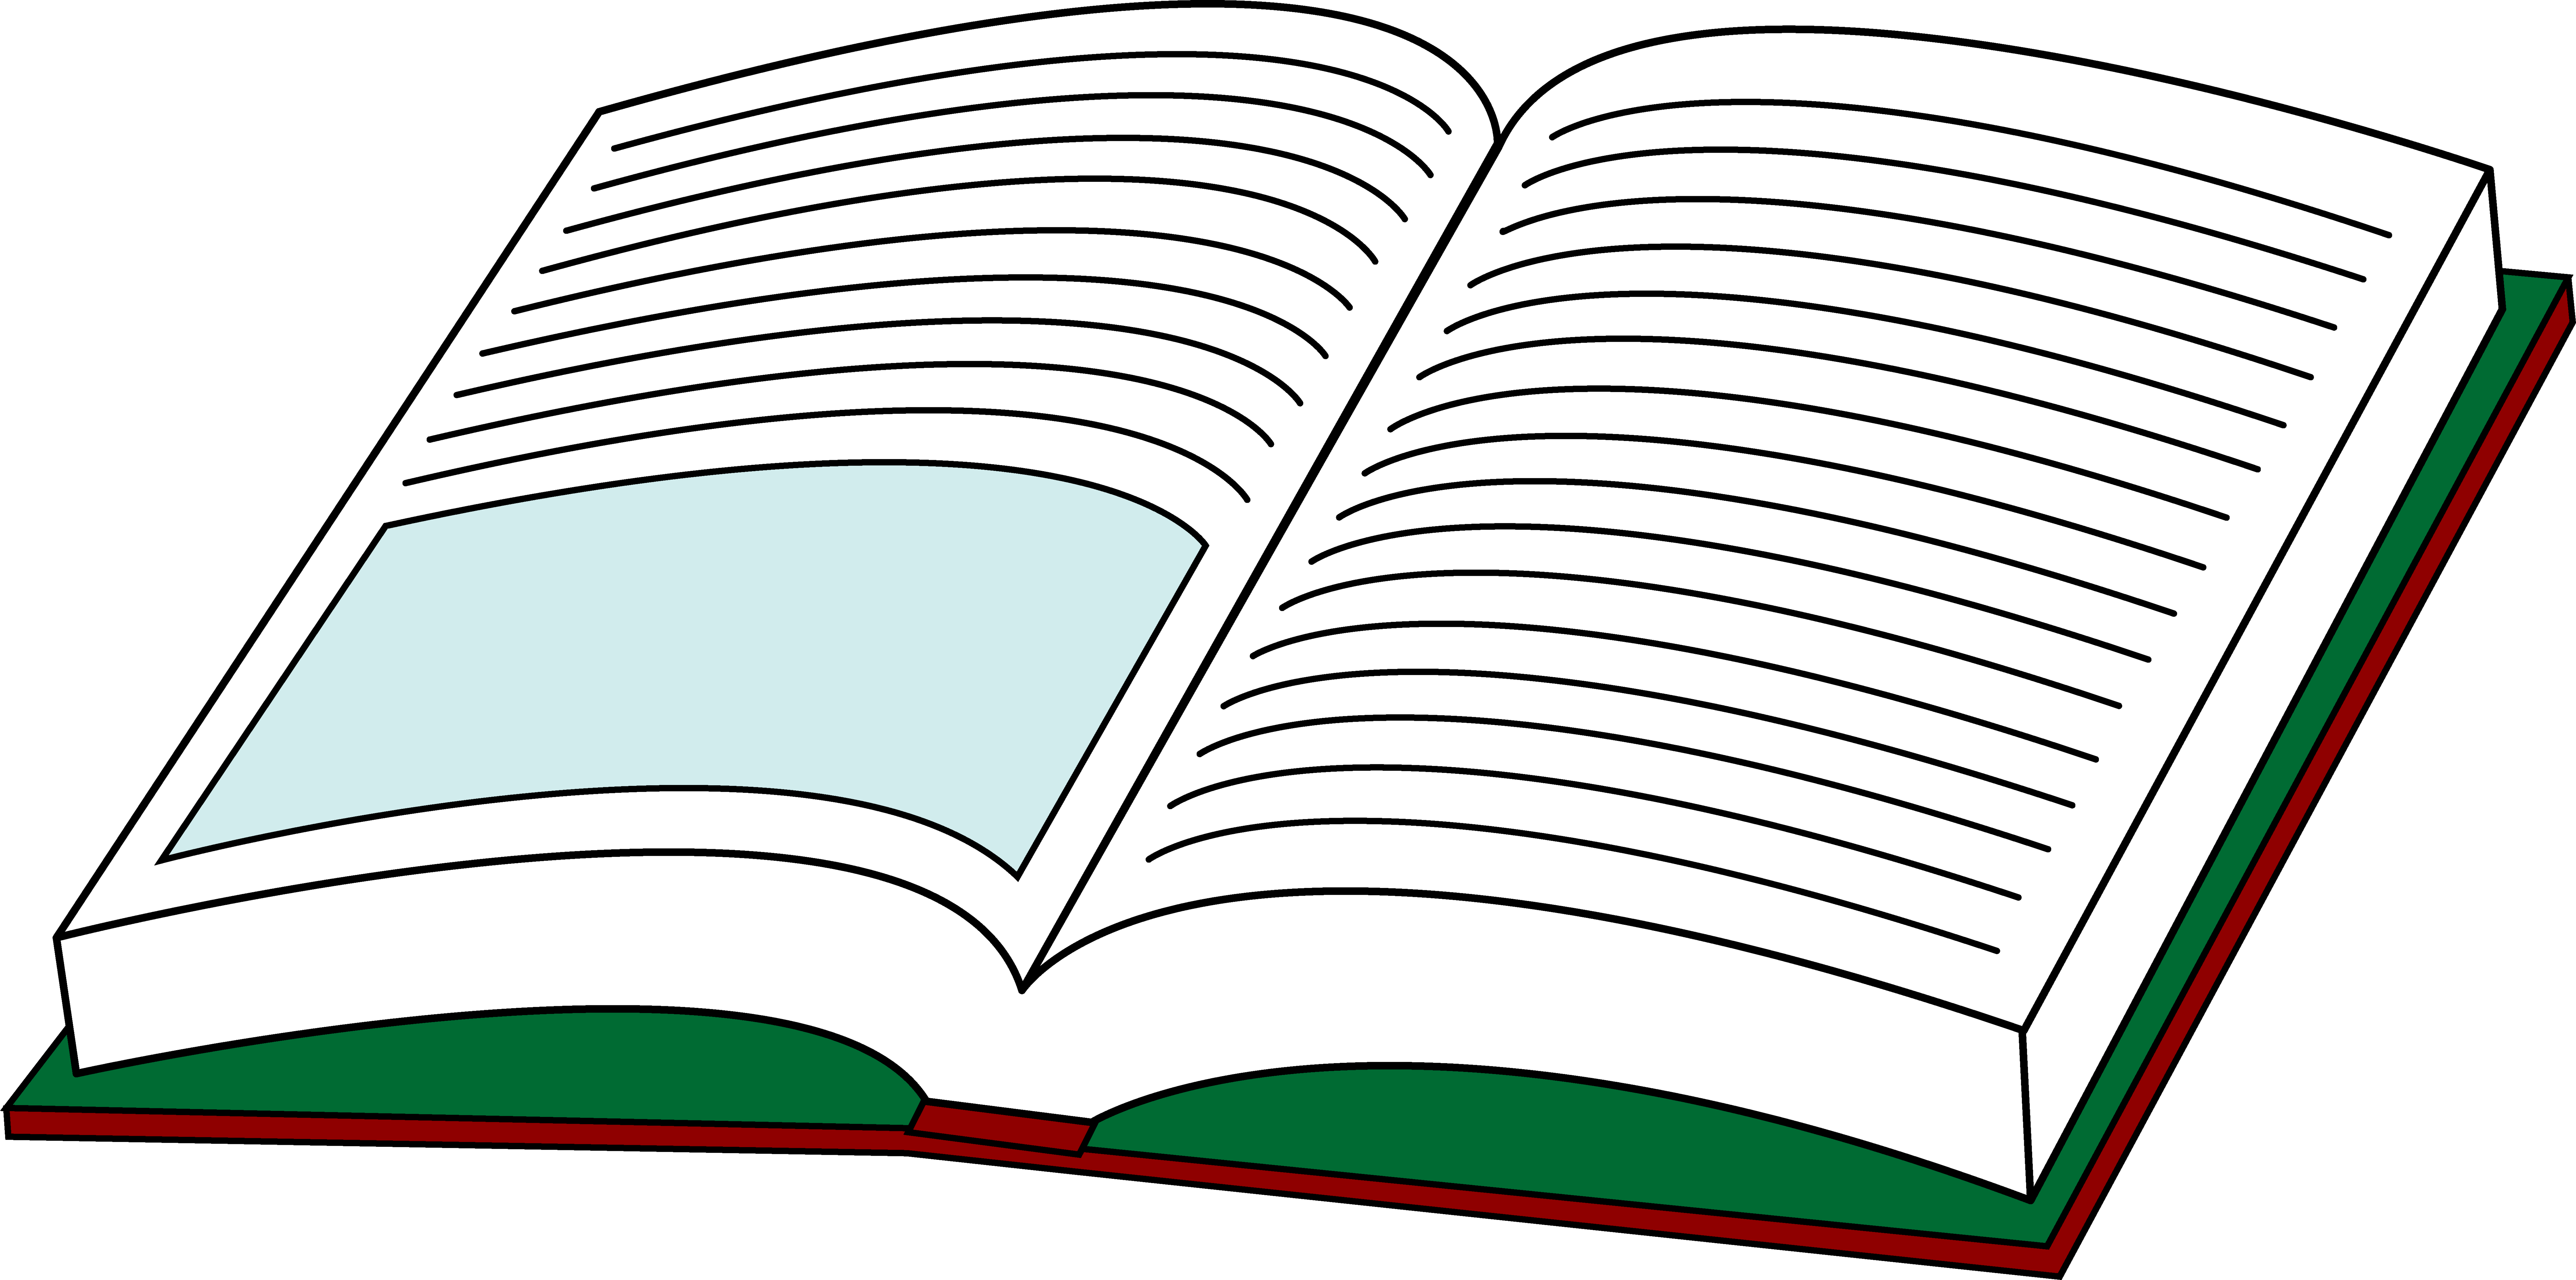 Open book cliparts free clip art on.